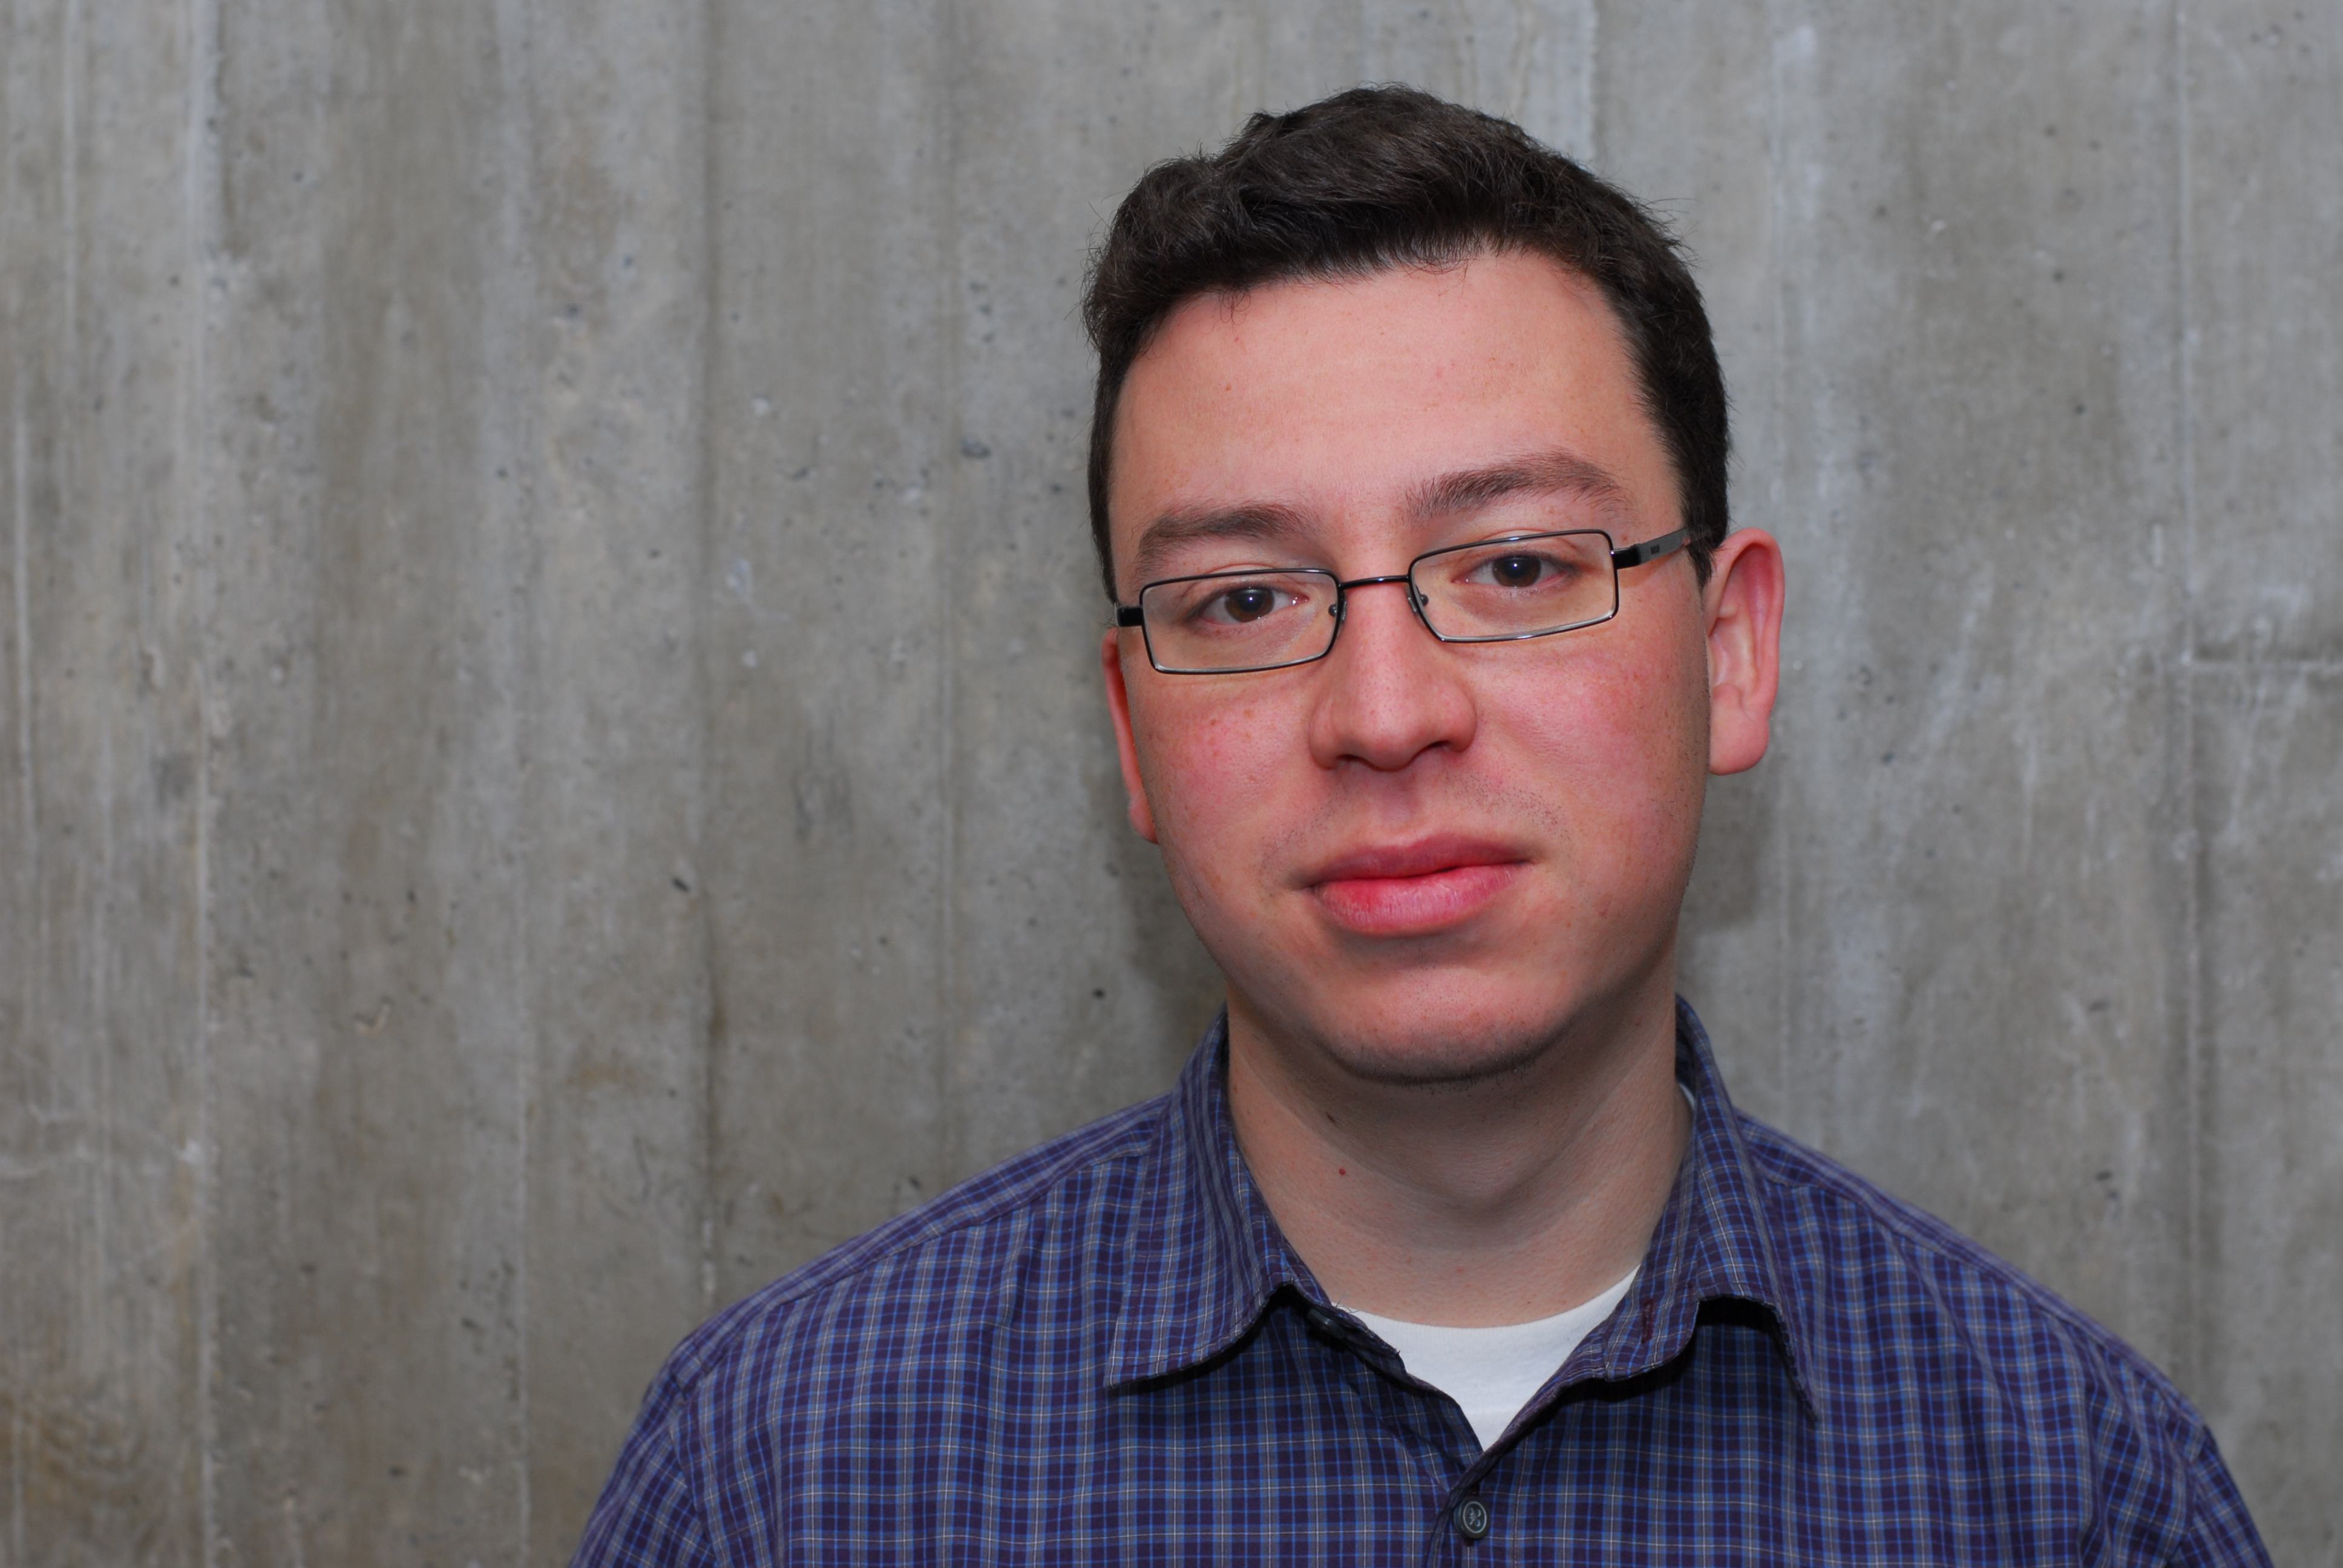 Luis von Ahn has developed a number of innovative programs like reCAPTCHA and GWAP.